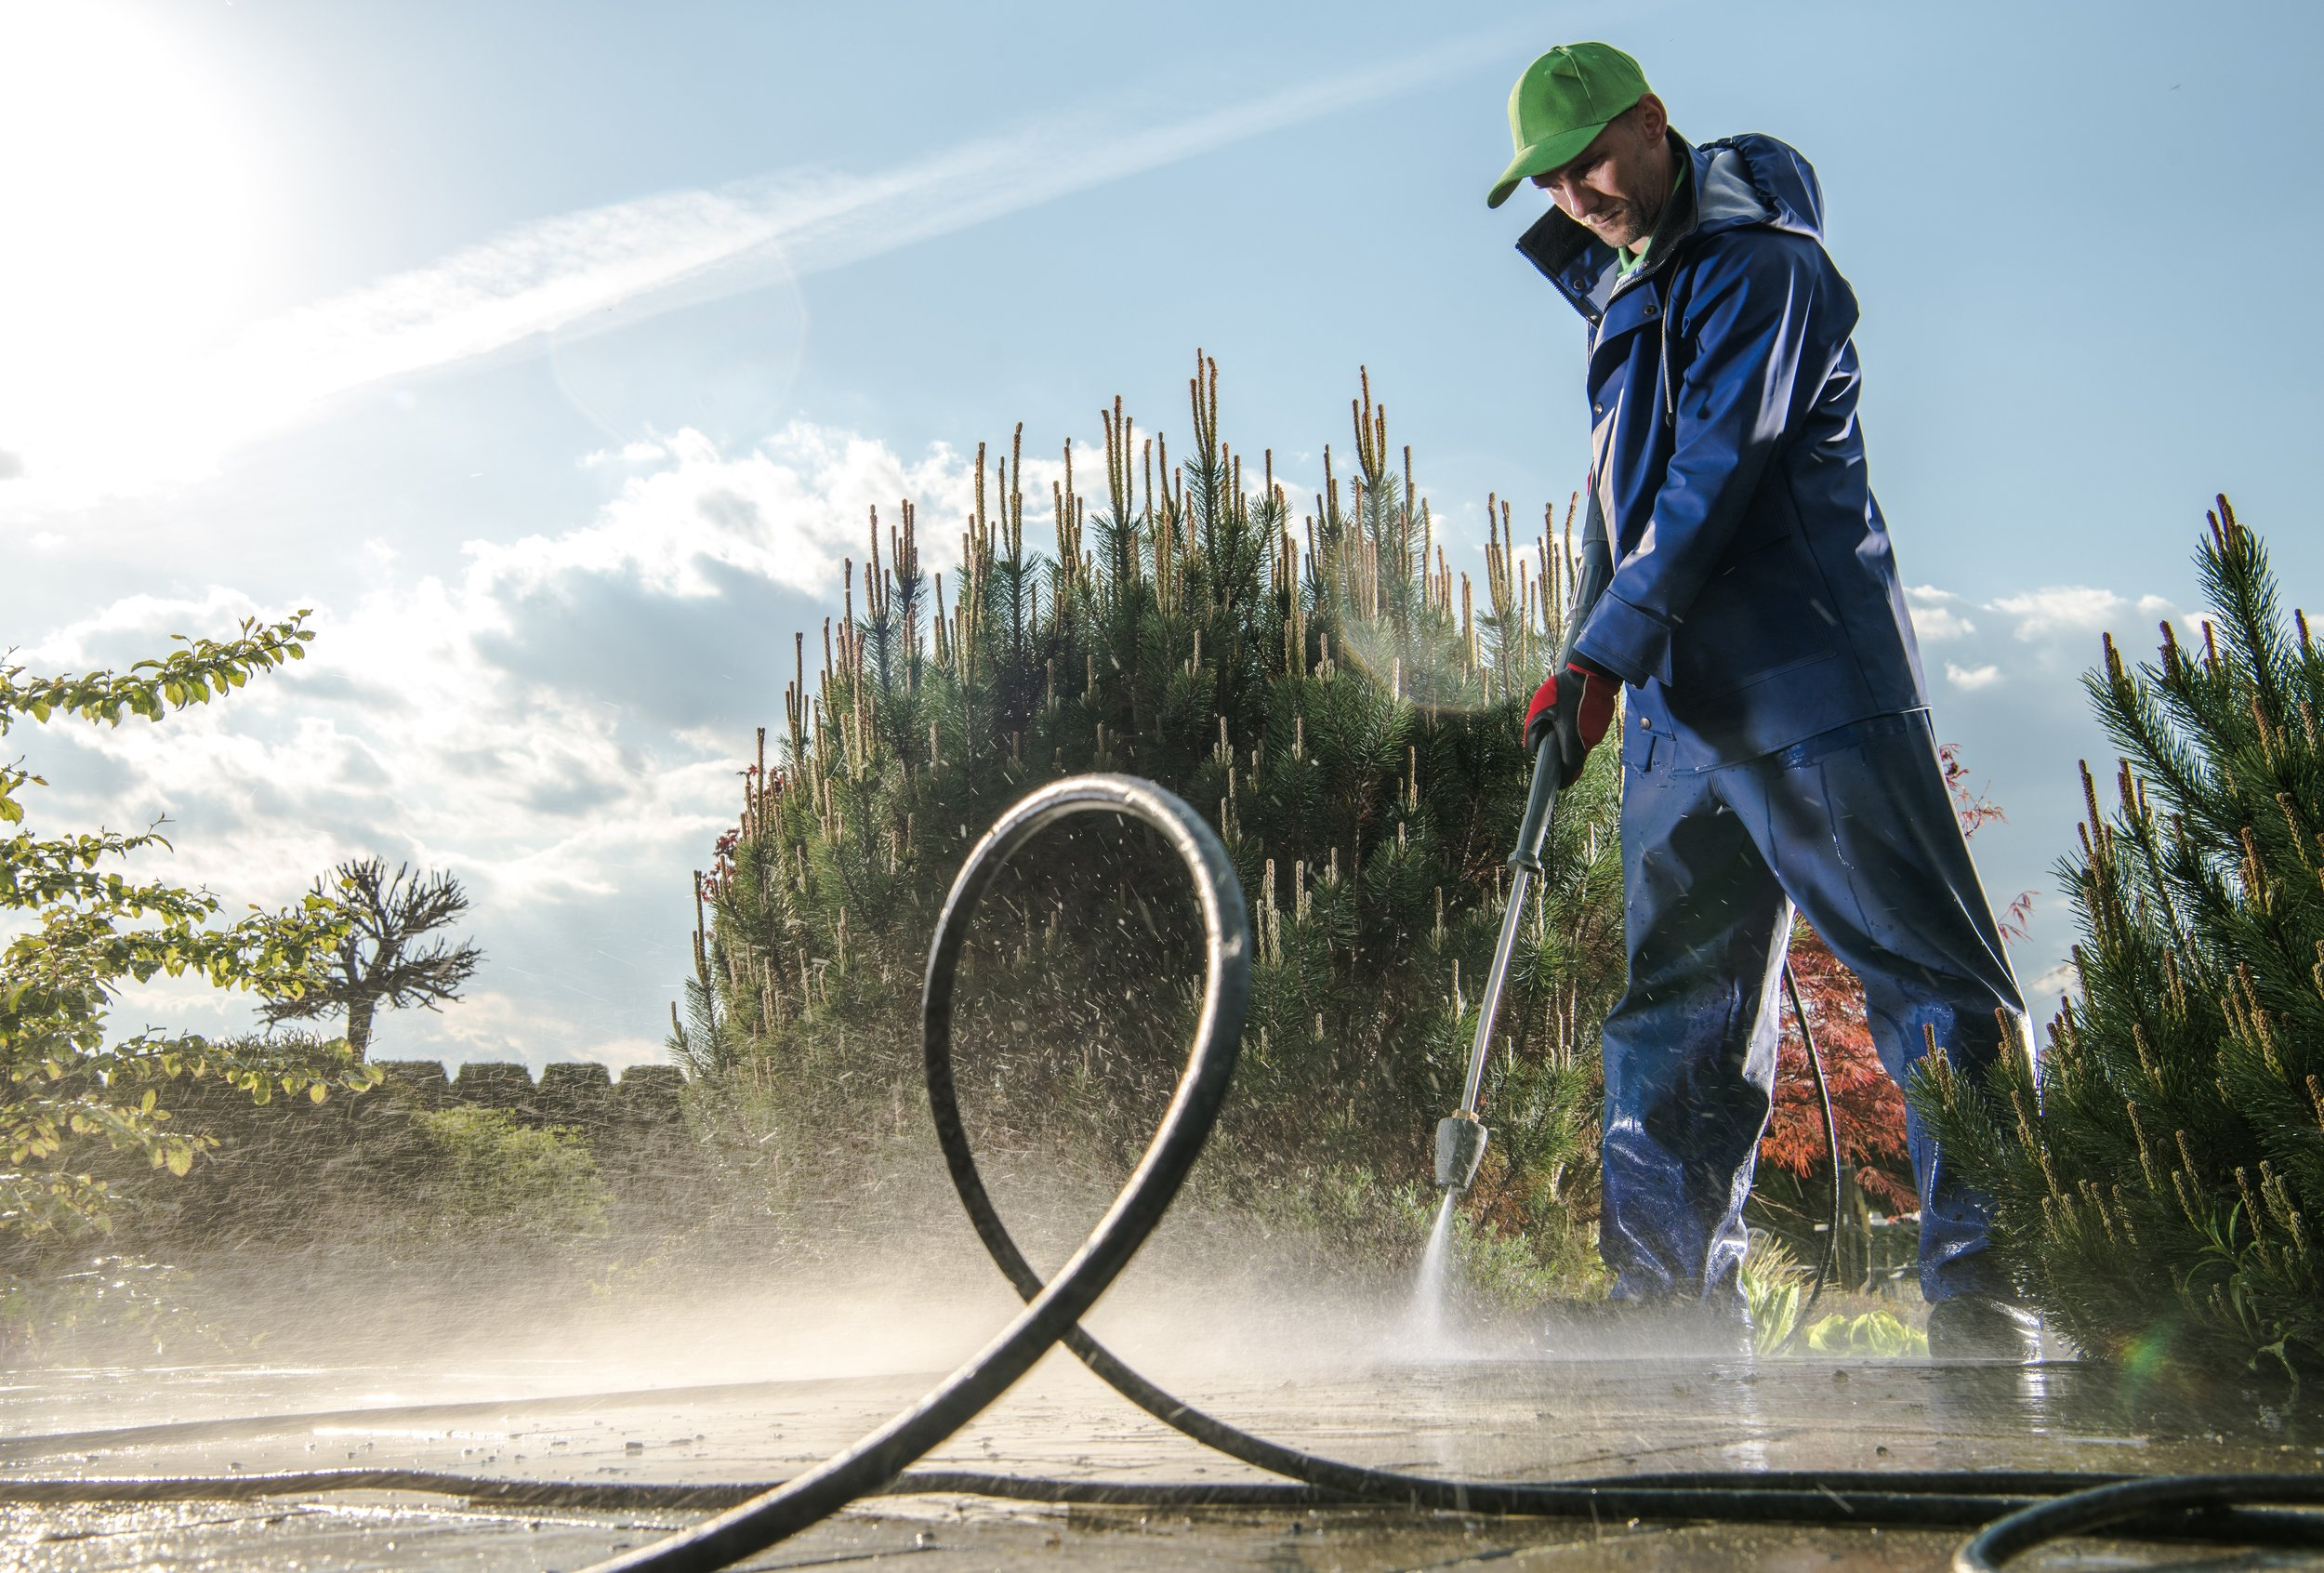 Pressure washing service Palm Springs Ca